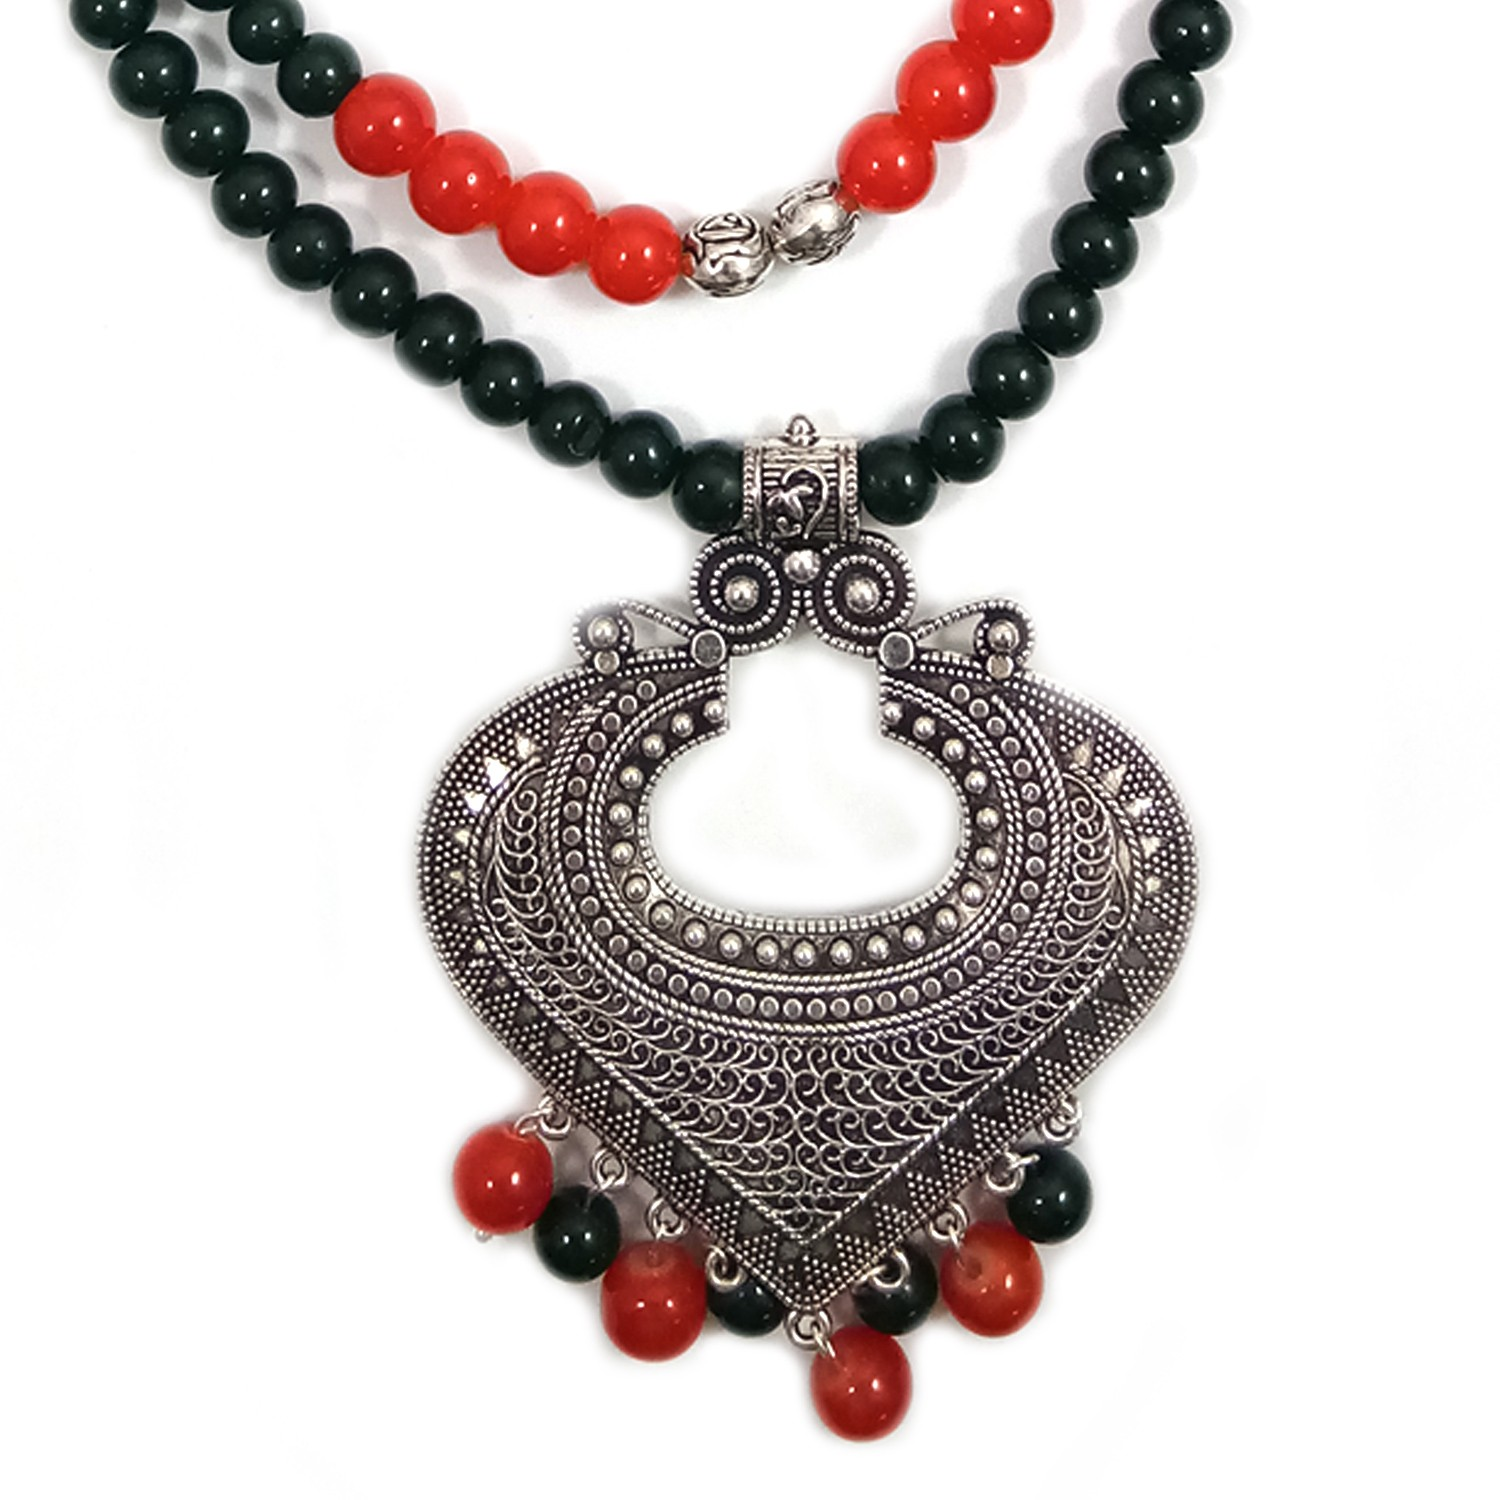 Handmade Costume Fashion Jewelry Red/Black/Silver  Necklace & Earrings (NER) by Women Groups